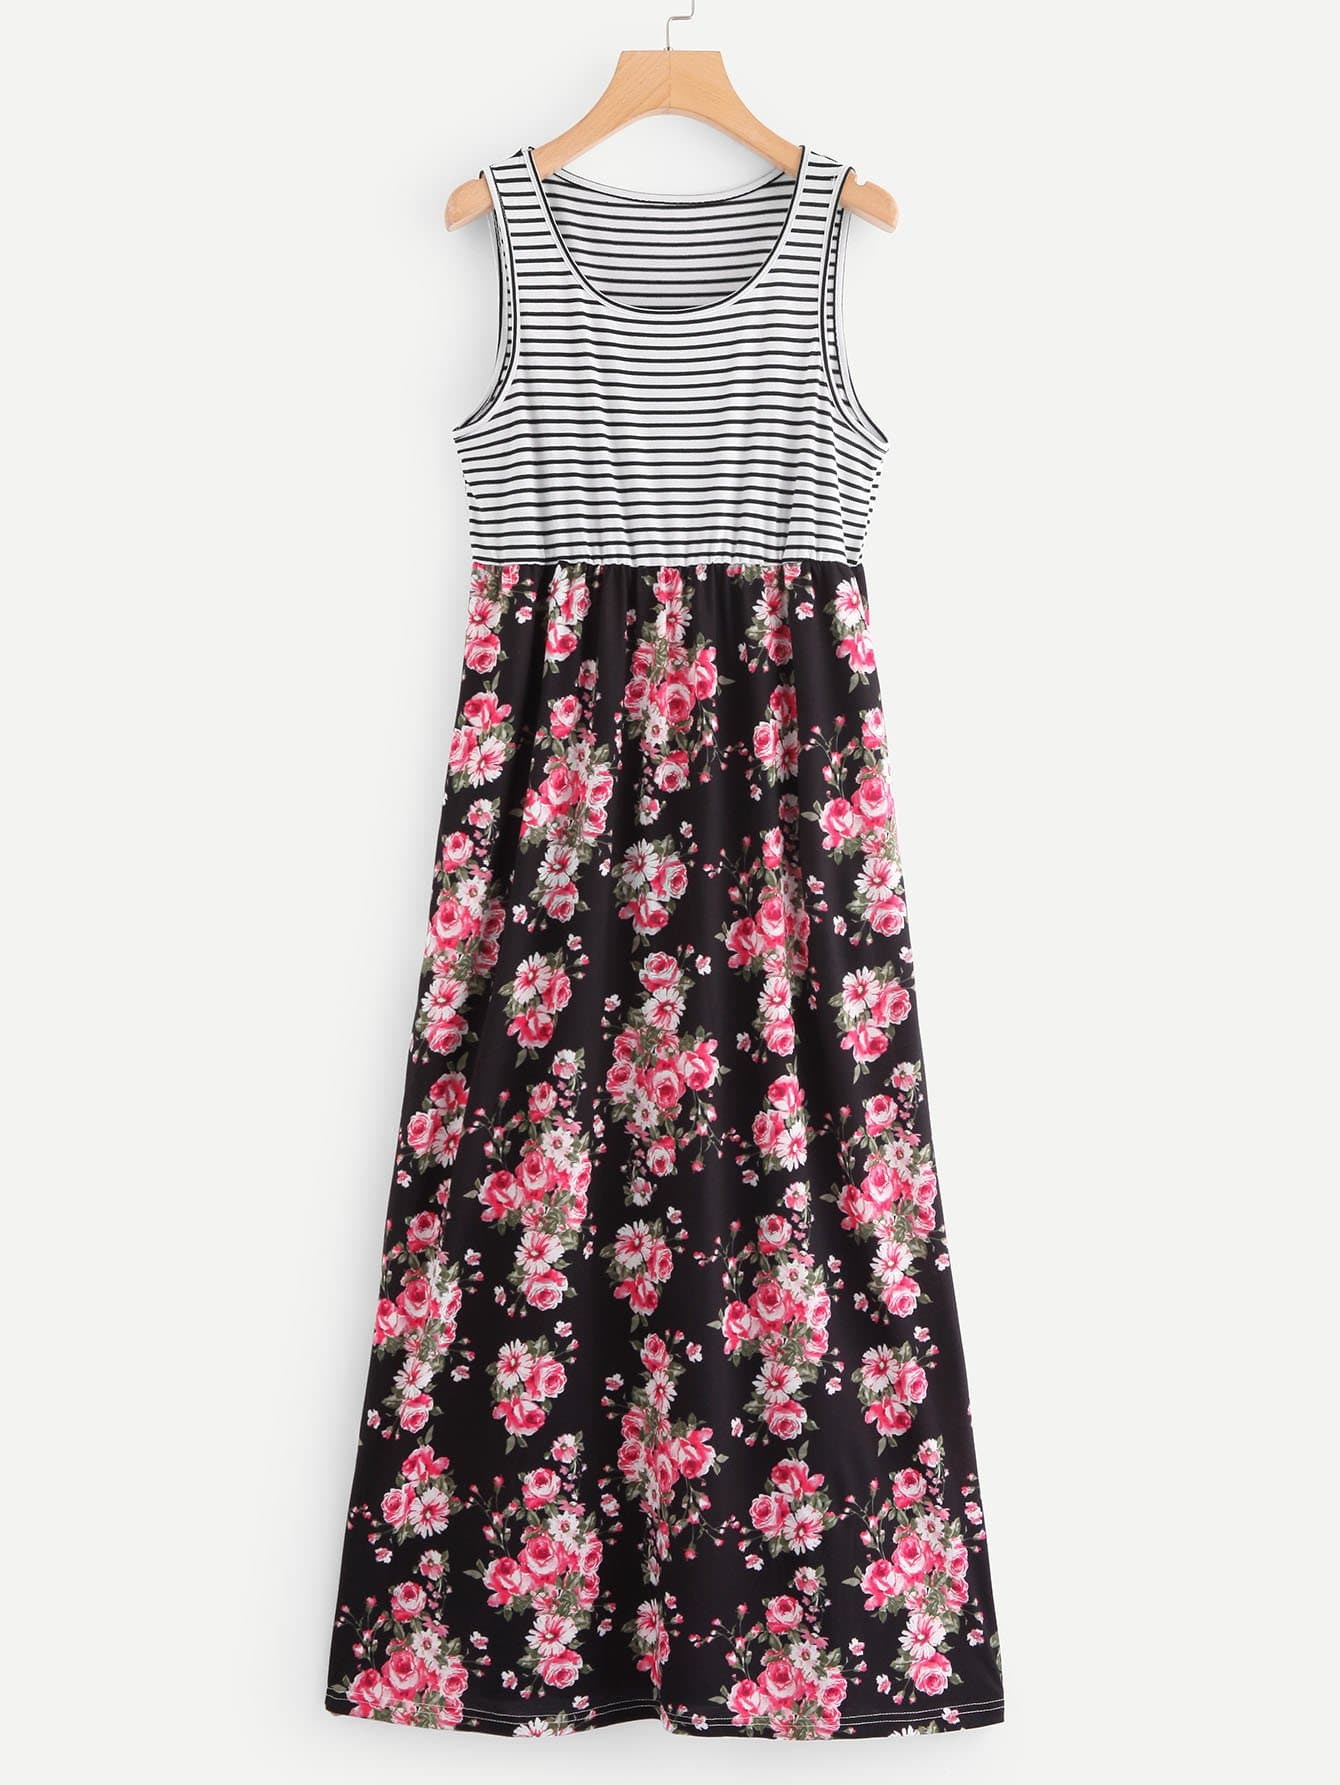 Allover Floral Print Striped Sleeveless Dress